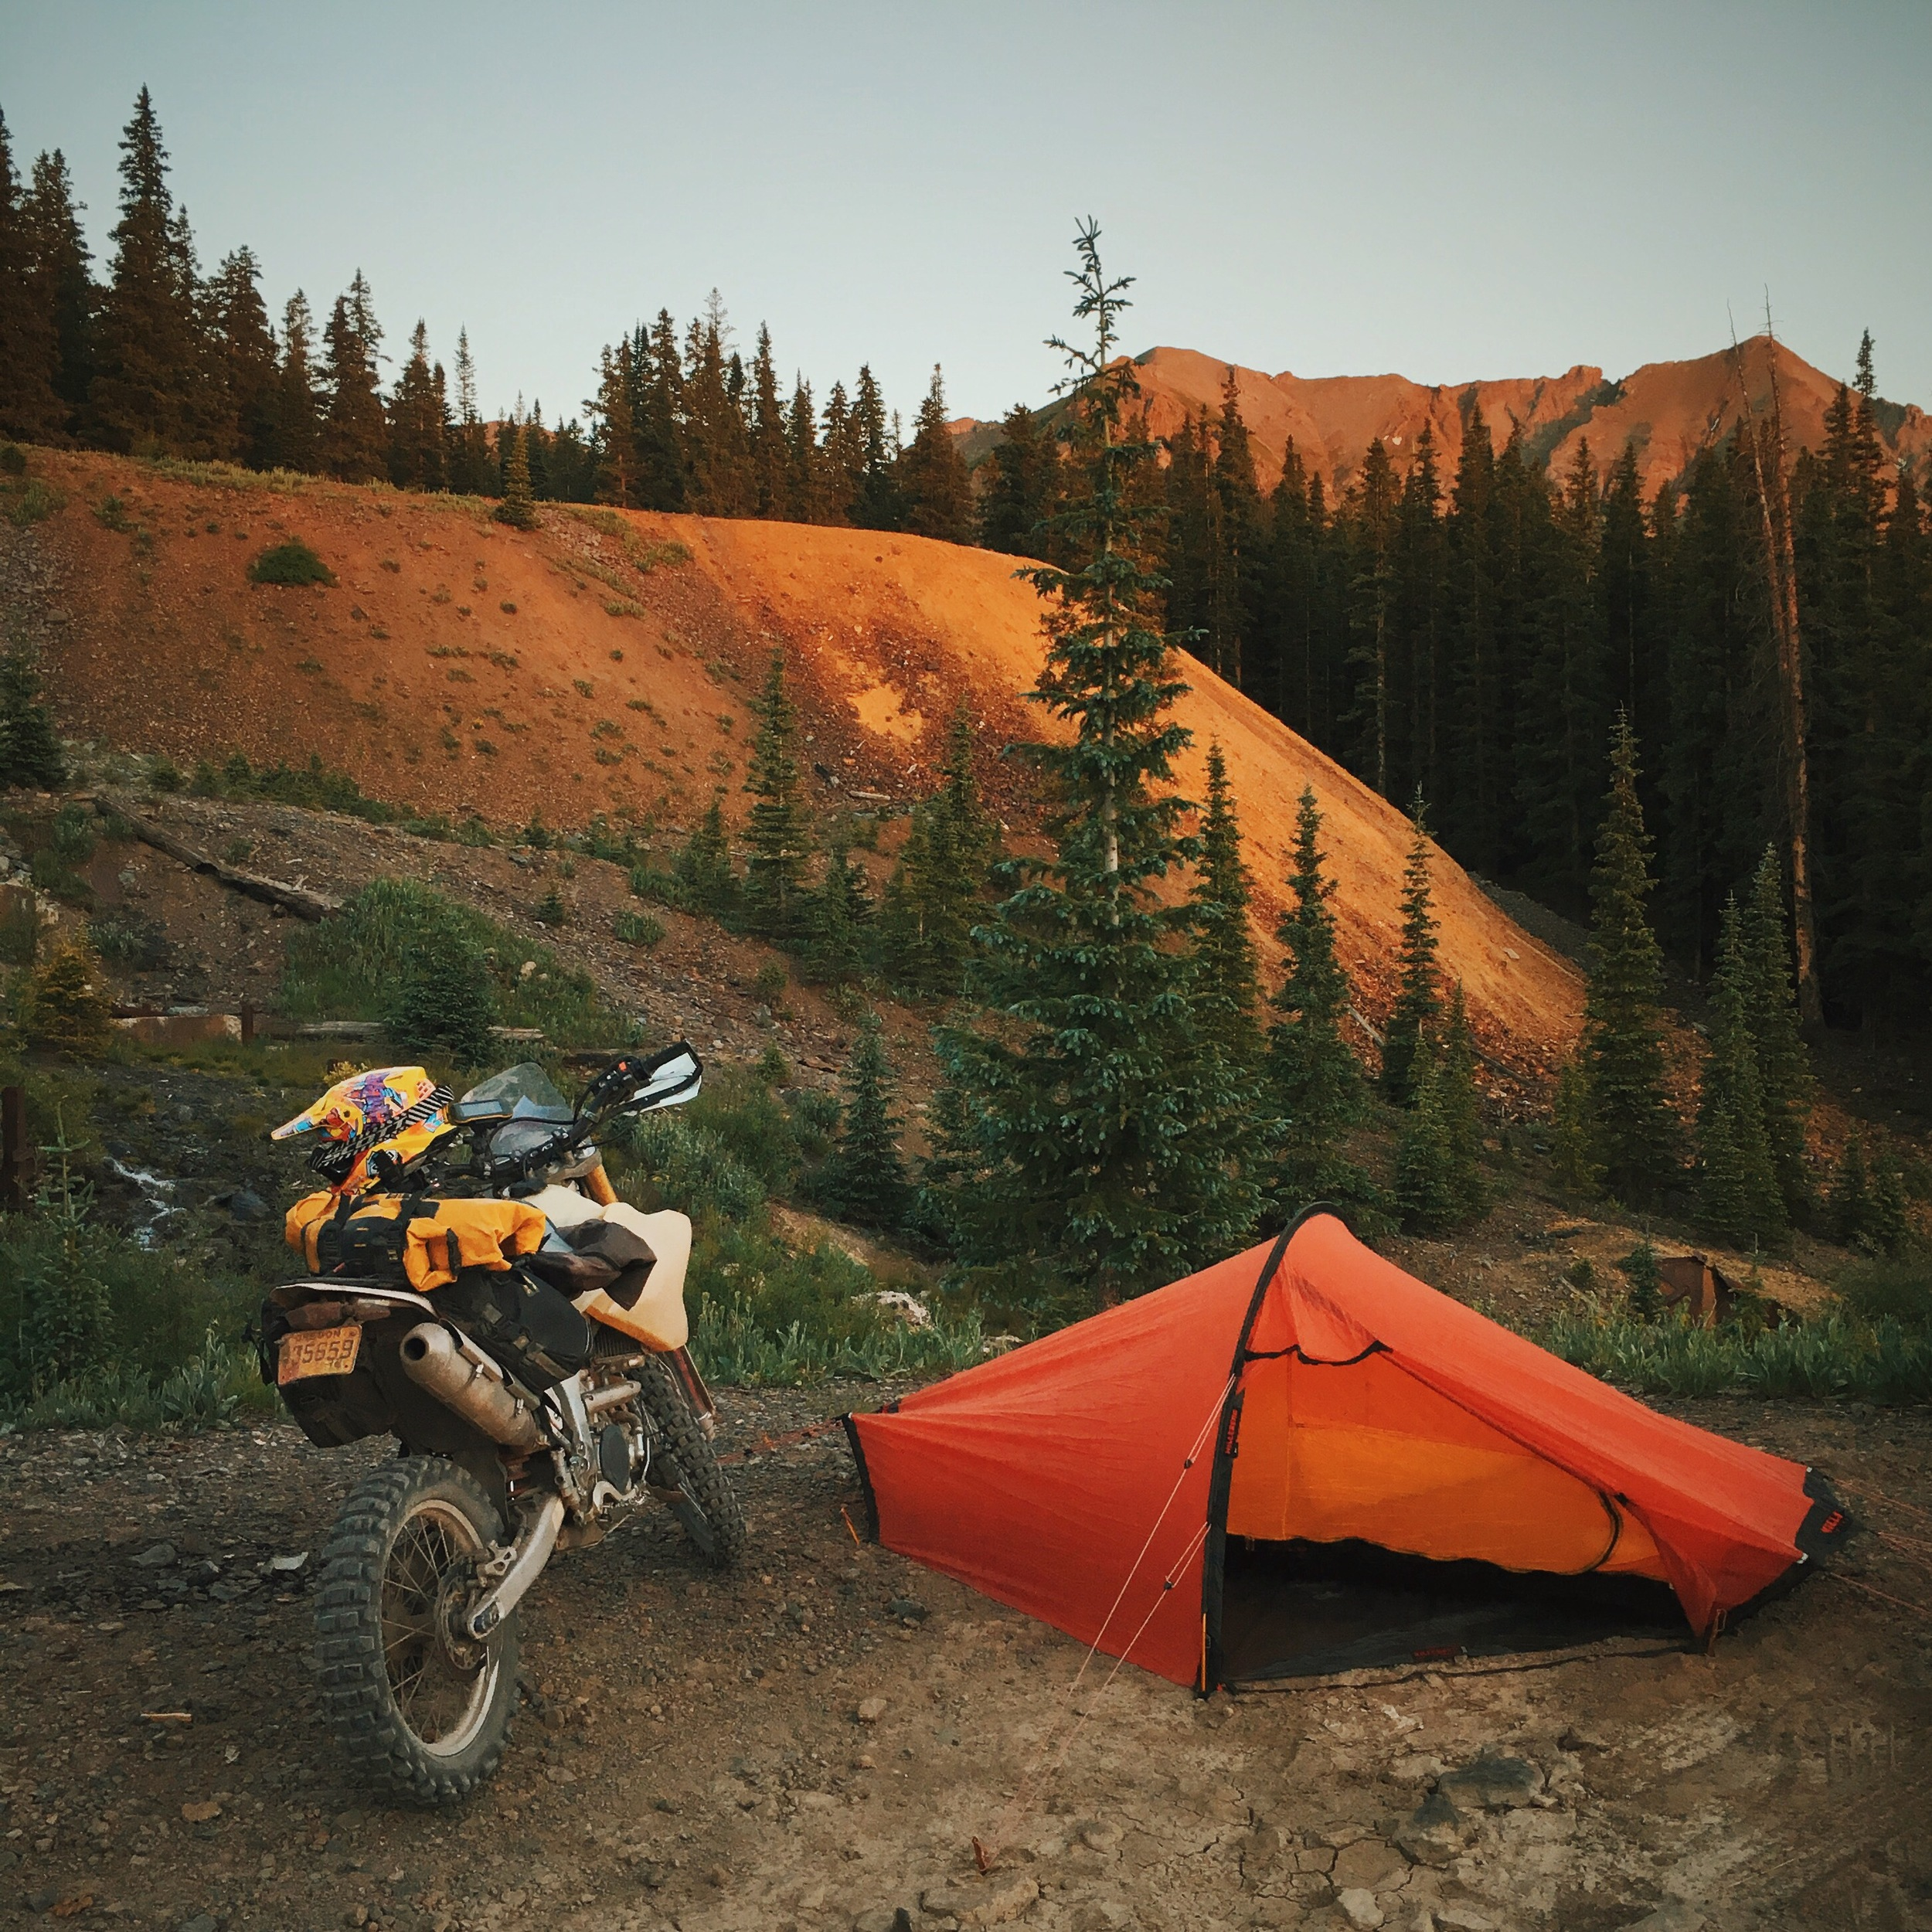 Alta Lakes, Colorado. Camping at 11k feet so I can beef up my red blood cells. I've been above 8k the entire time I've rolled into Colorado. The mountains here are huge! My 25 hp bike is now 10. ⛺️🚲🌙